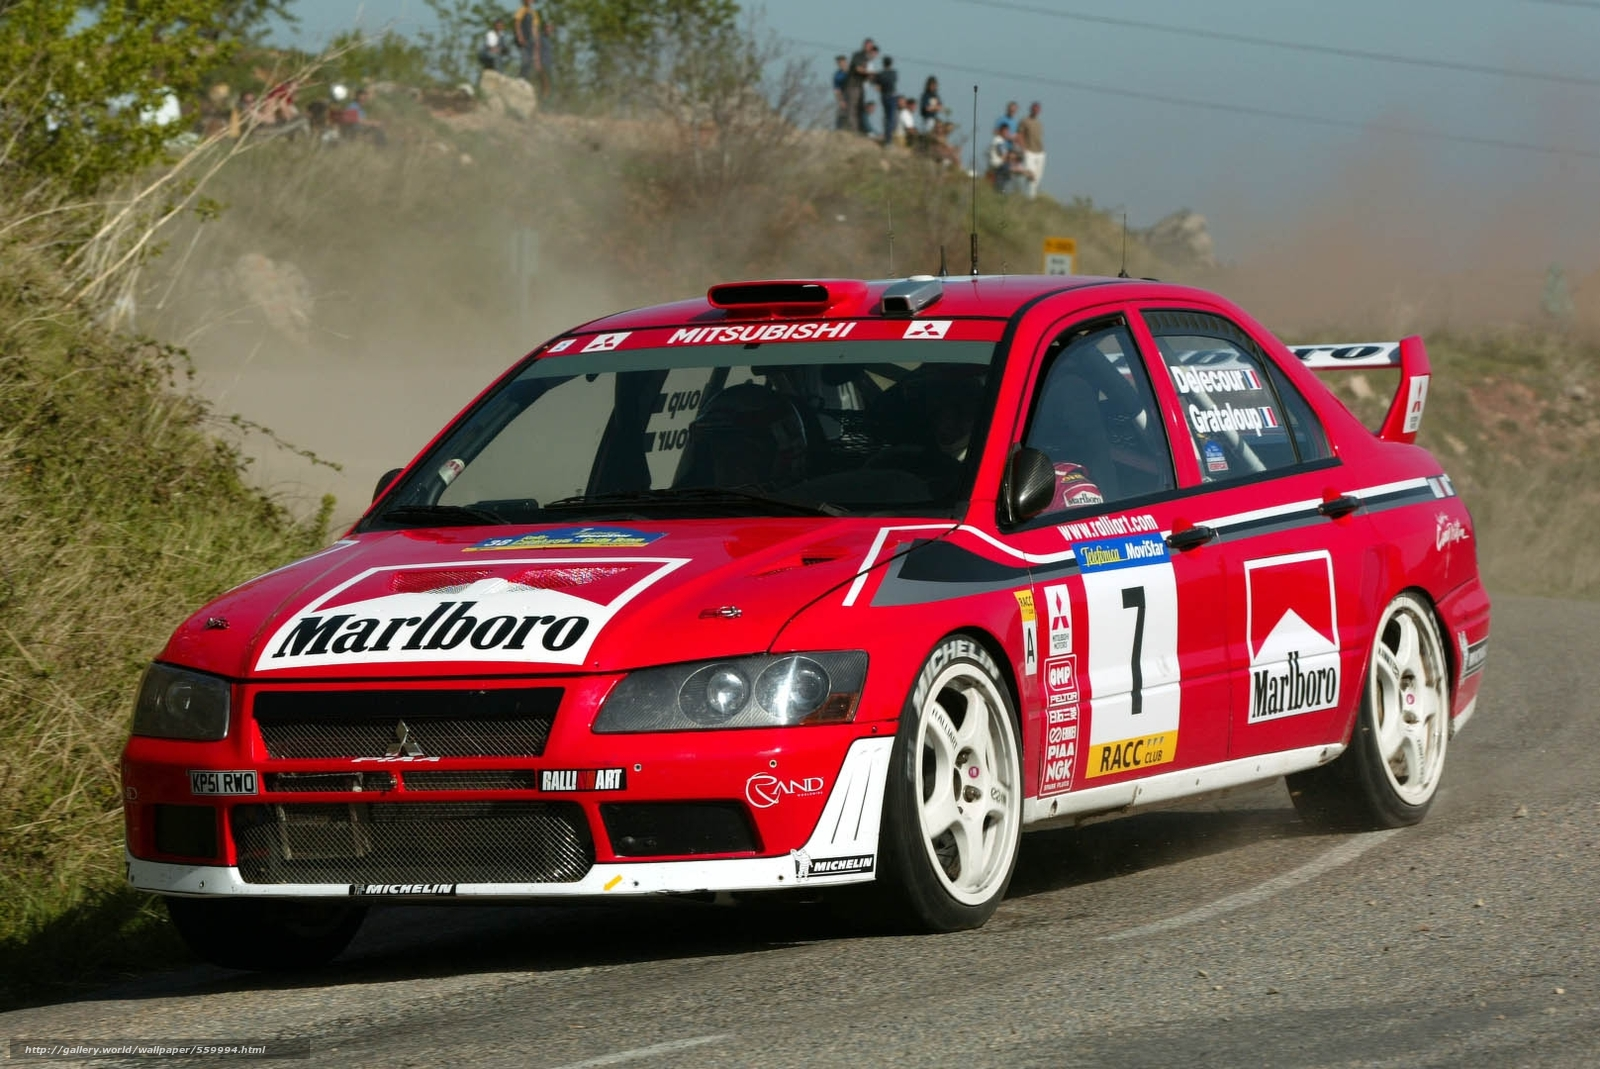 Download wallpaper wrc 2002 mitsubishi lancer rally free desktop wallpaper in the resolution 1617x1080 picture 559994